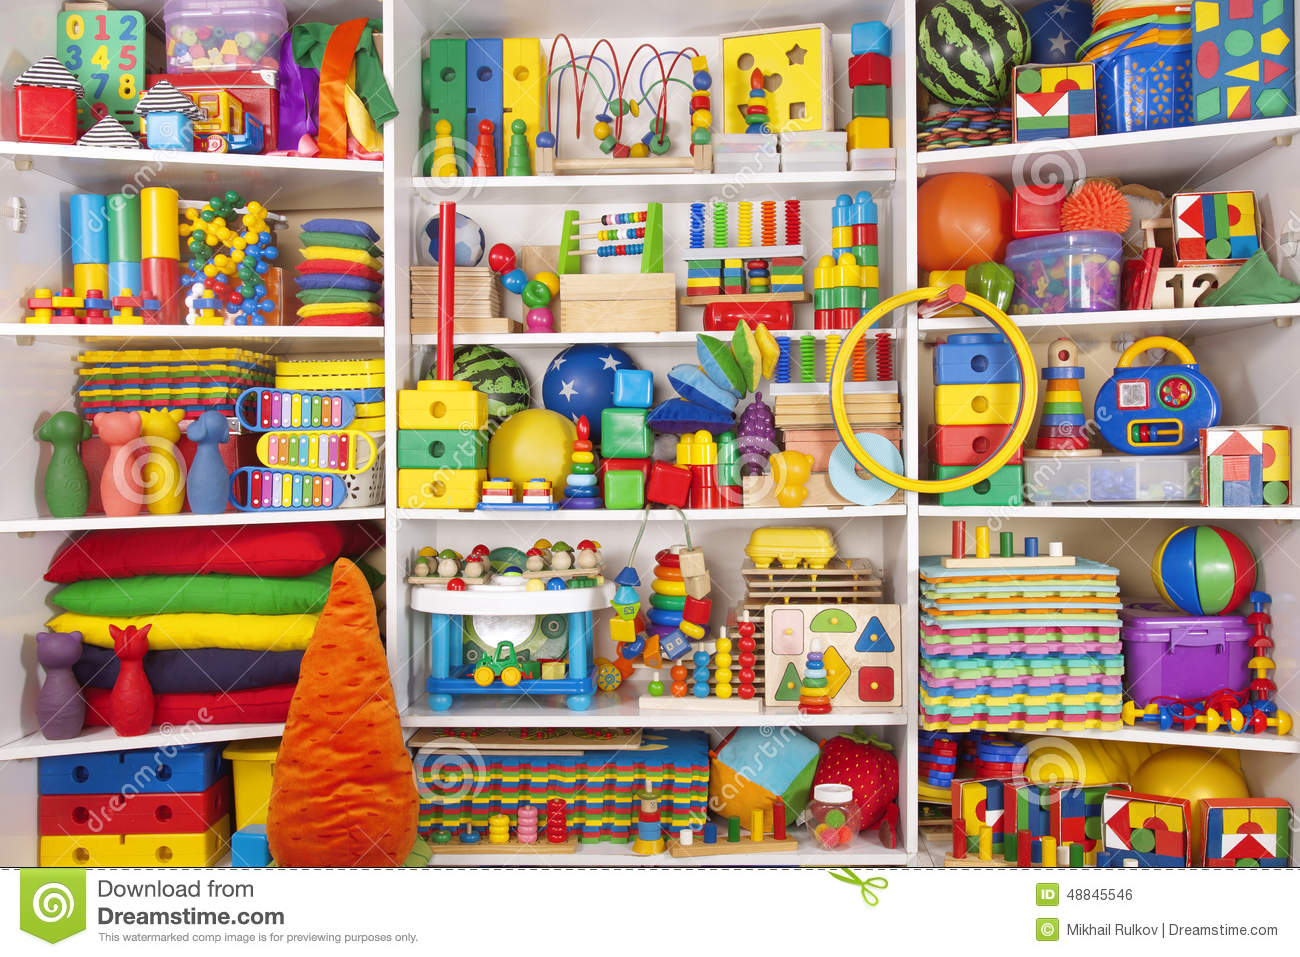 Meuble De Rangement Jouet Shelf With Toys Stock Photo - Image: 48845546